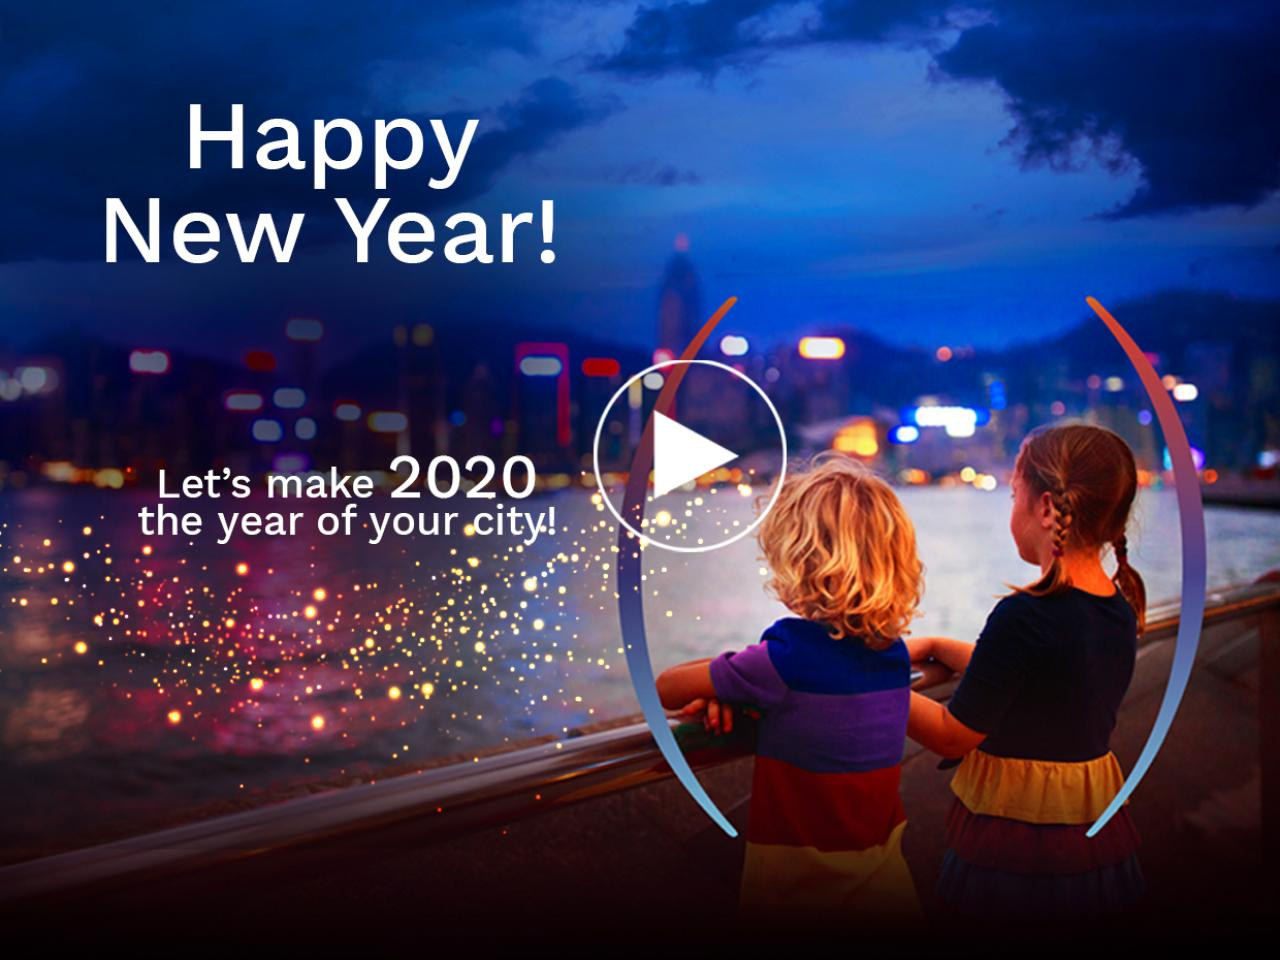 Schréder wishes you a fantastic New Year in 2020!